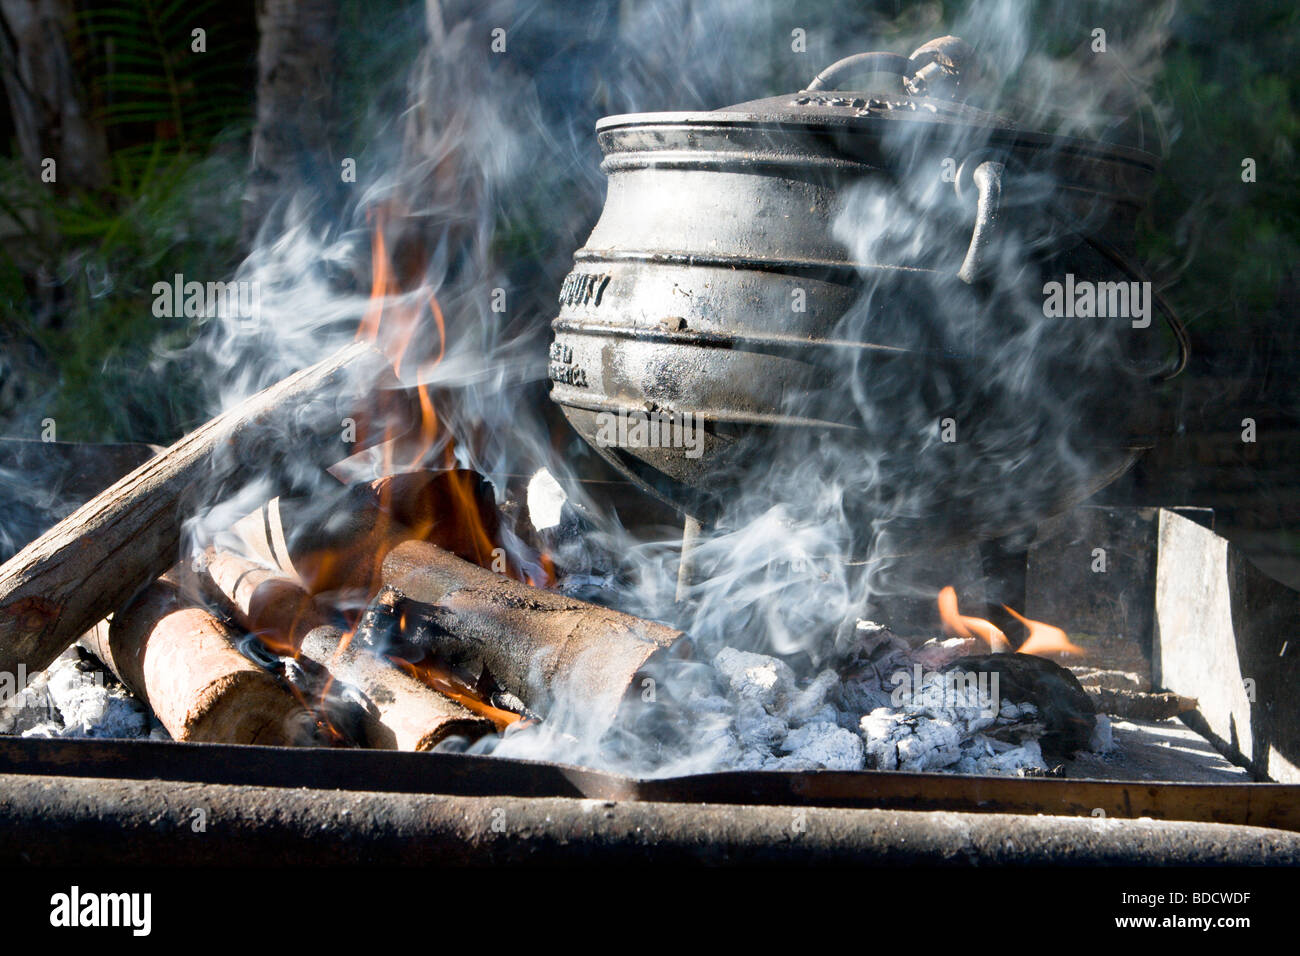 Cooking On An Open Fire With A Cast Iron Pot In South